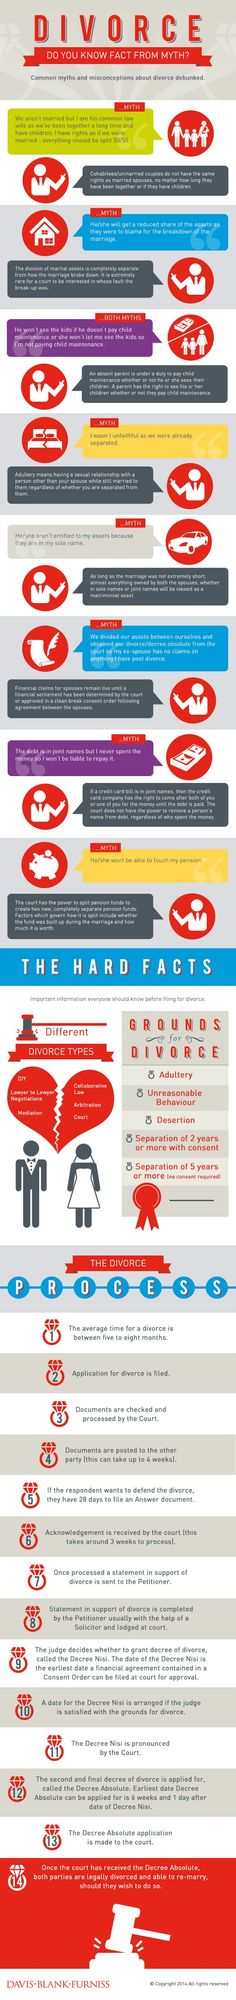 Divorce - Do you know fact from myth?   #infographic #Divorce #Marriage